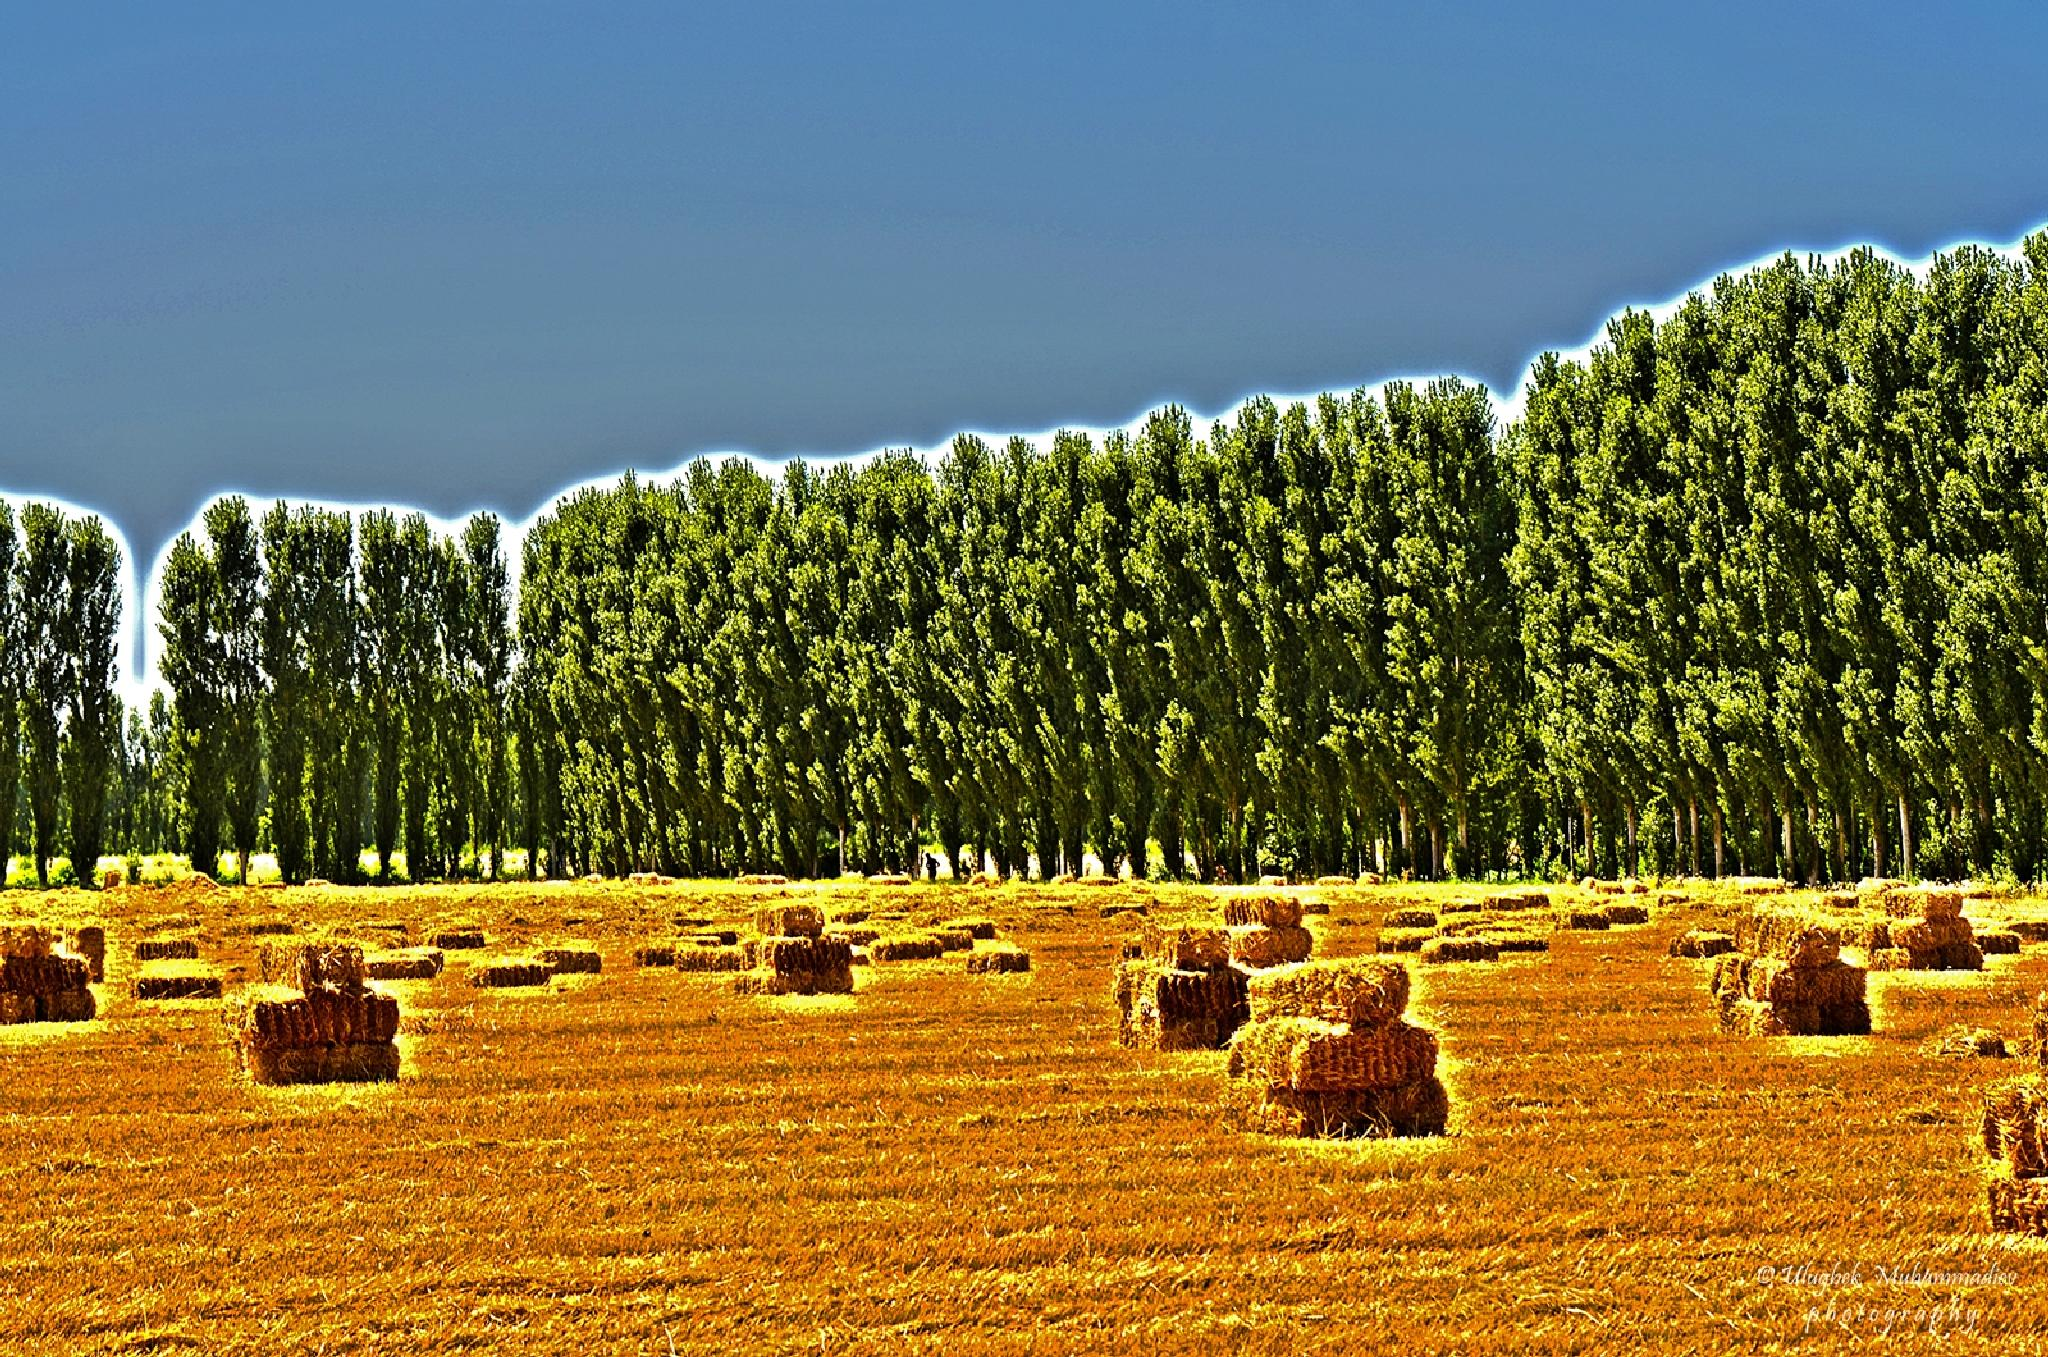 After the harvest ... by Ulugbek